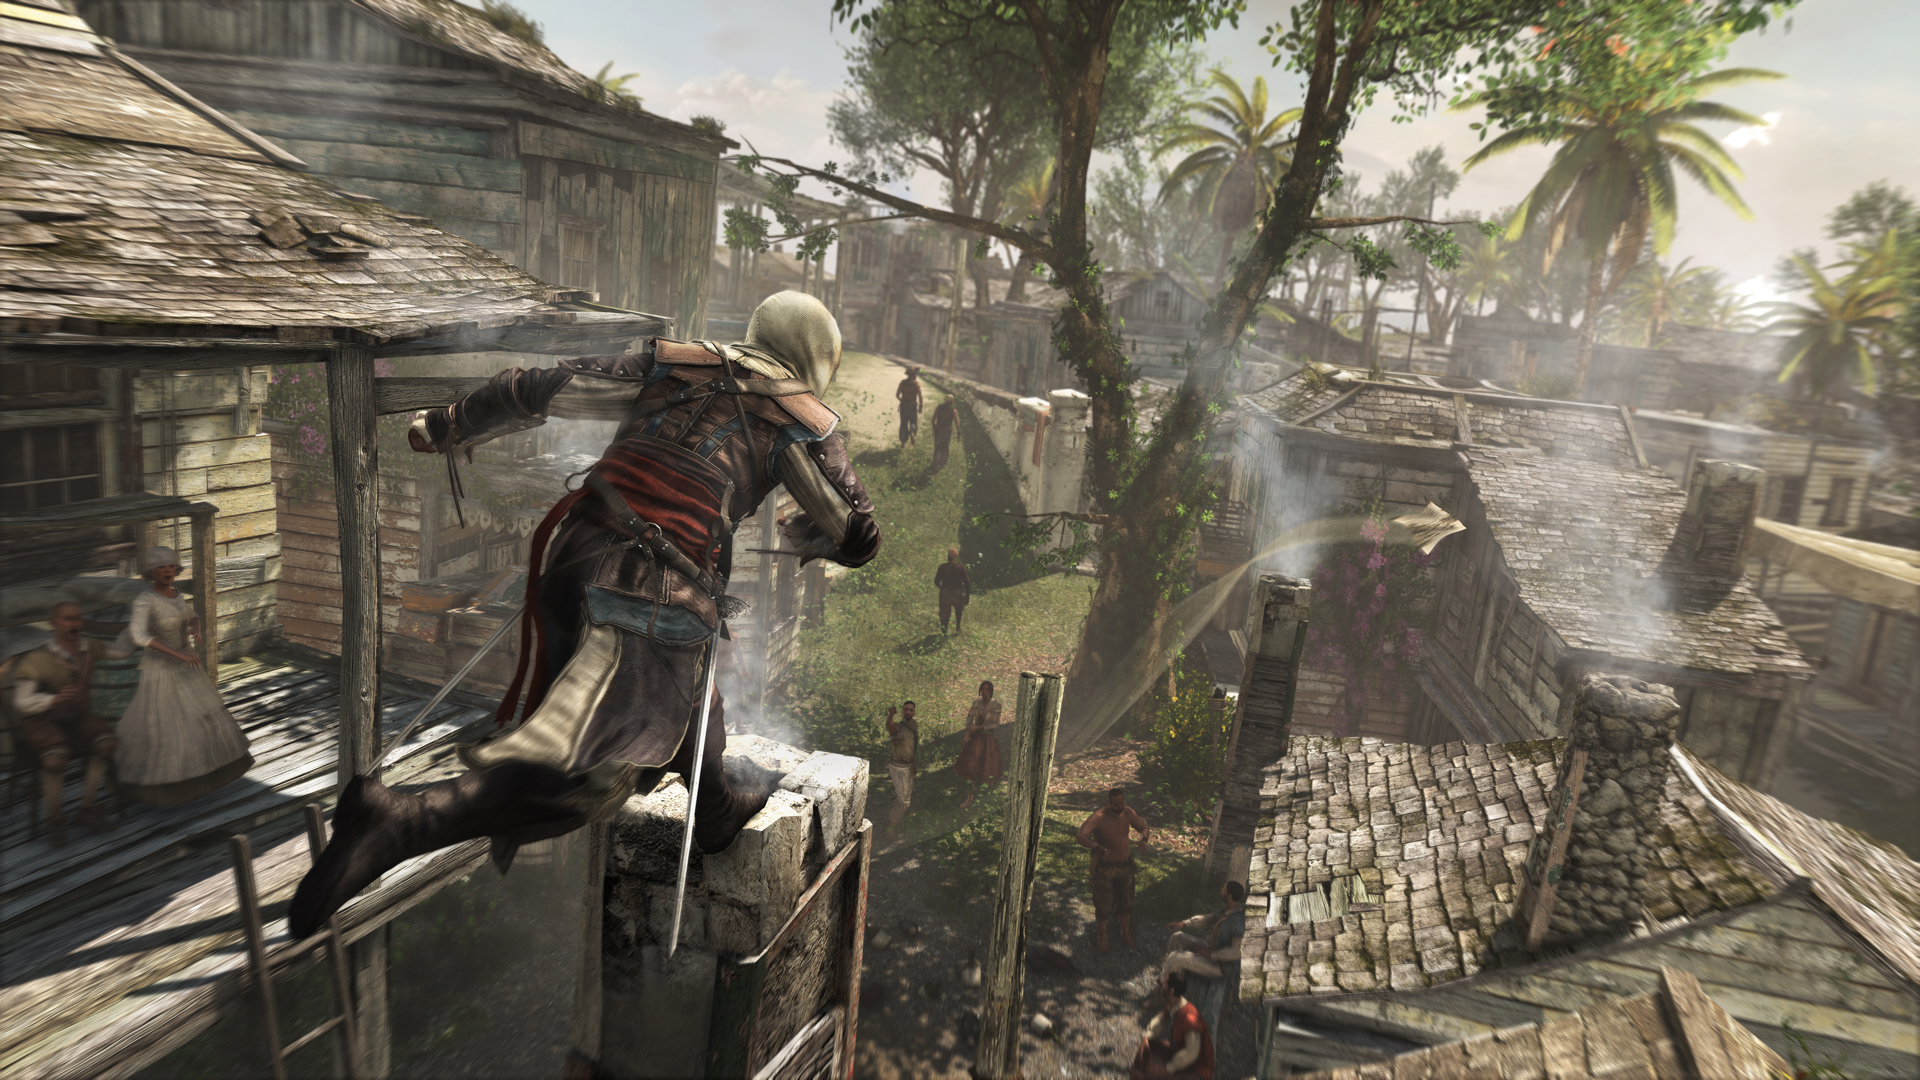 Assassin S Creed 4 Walkthrough How To Complete Sequences